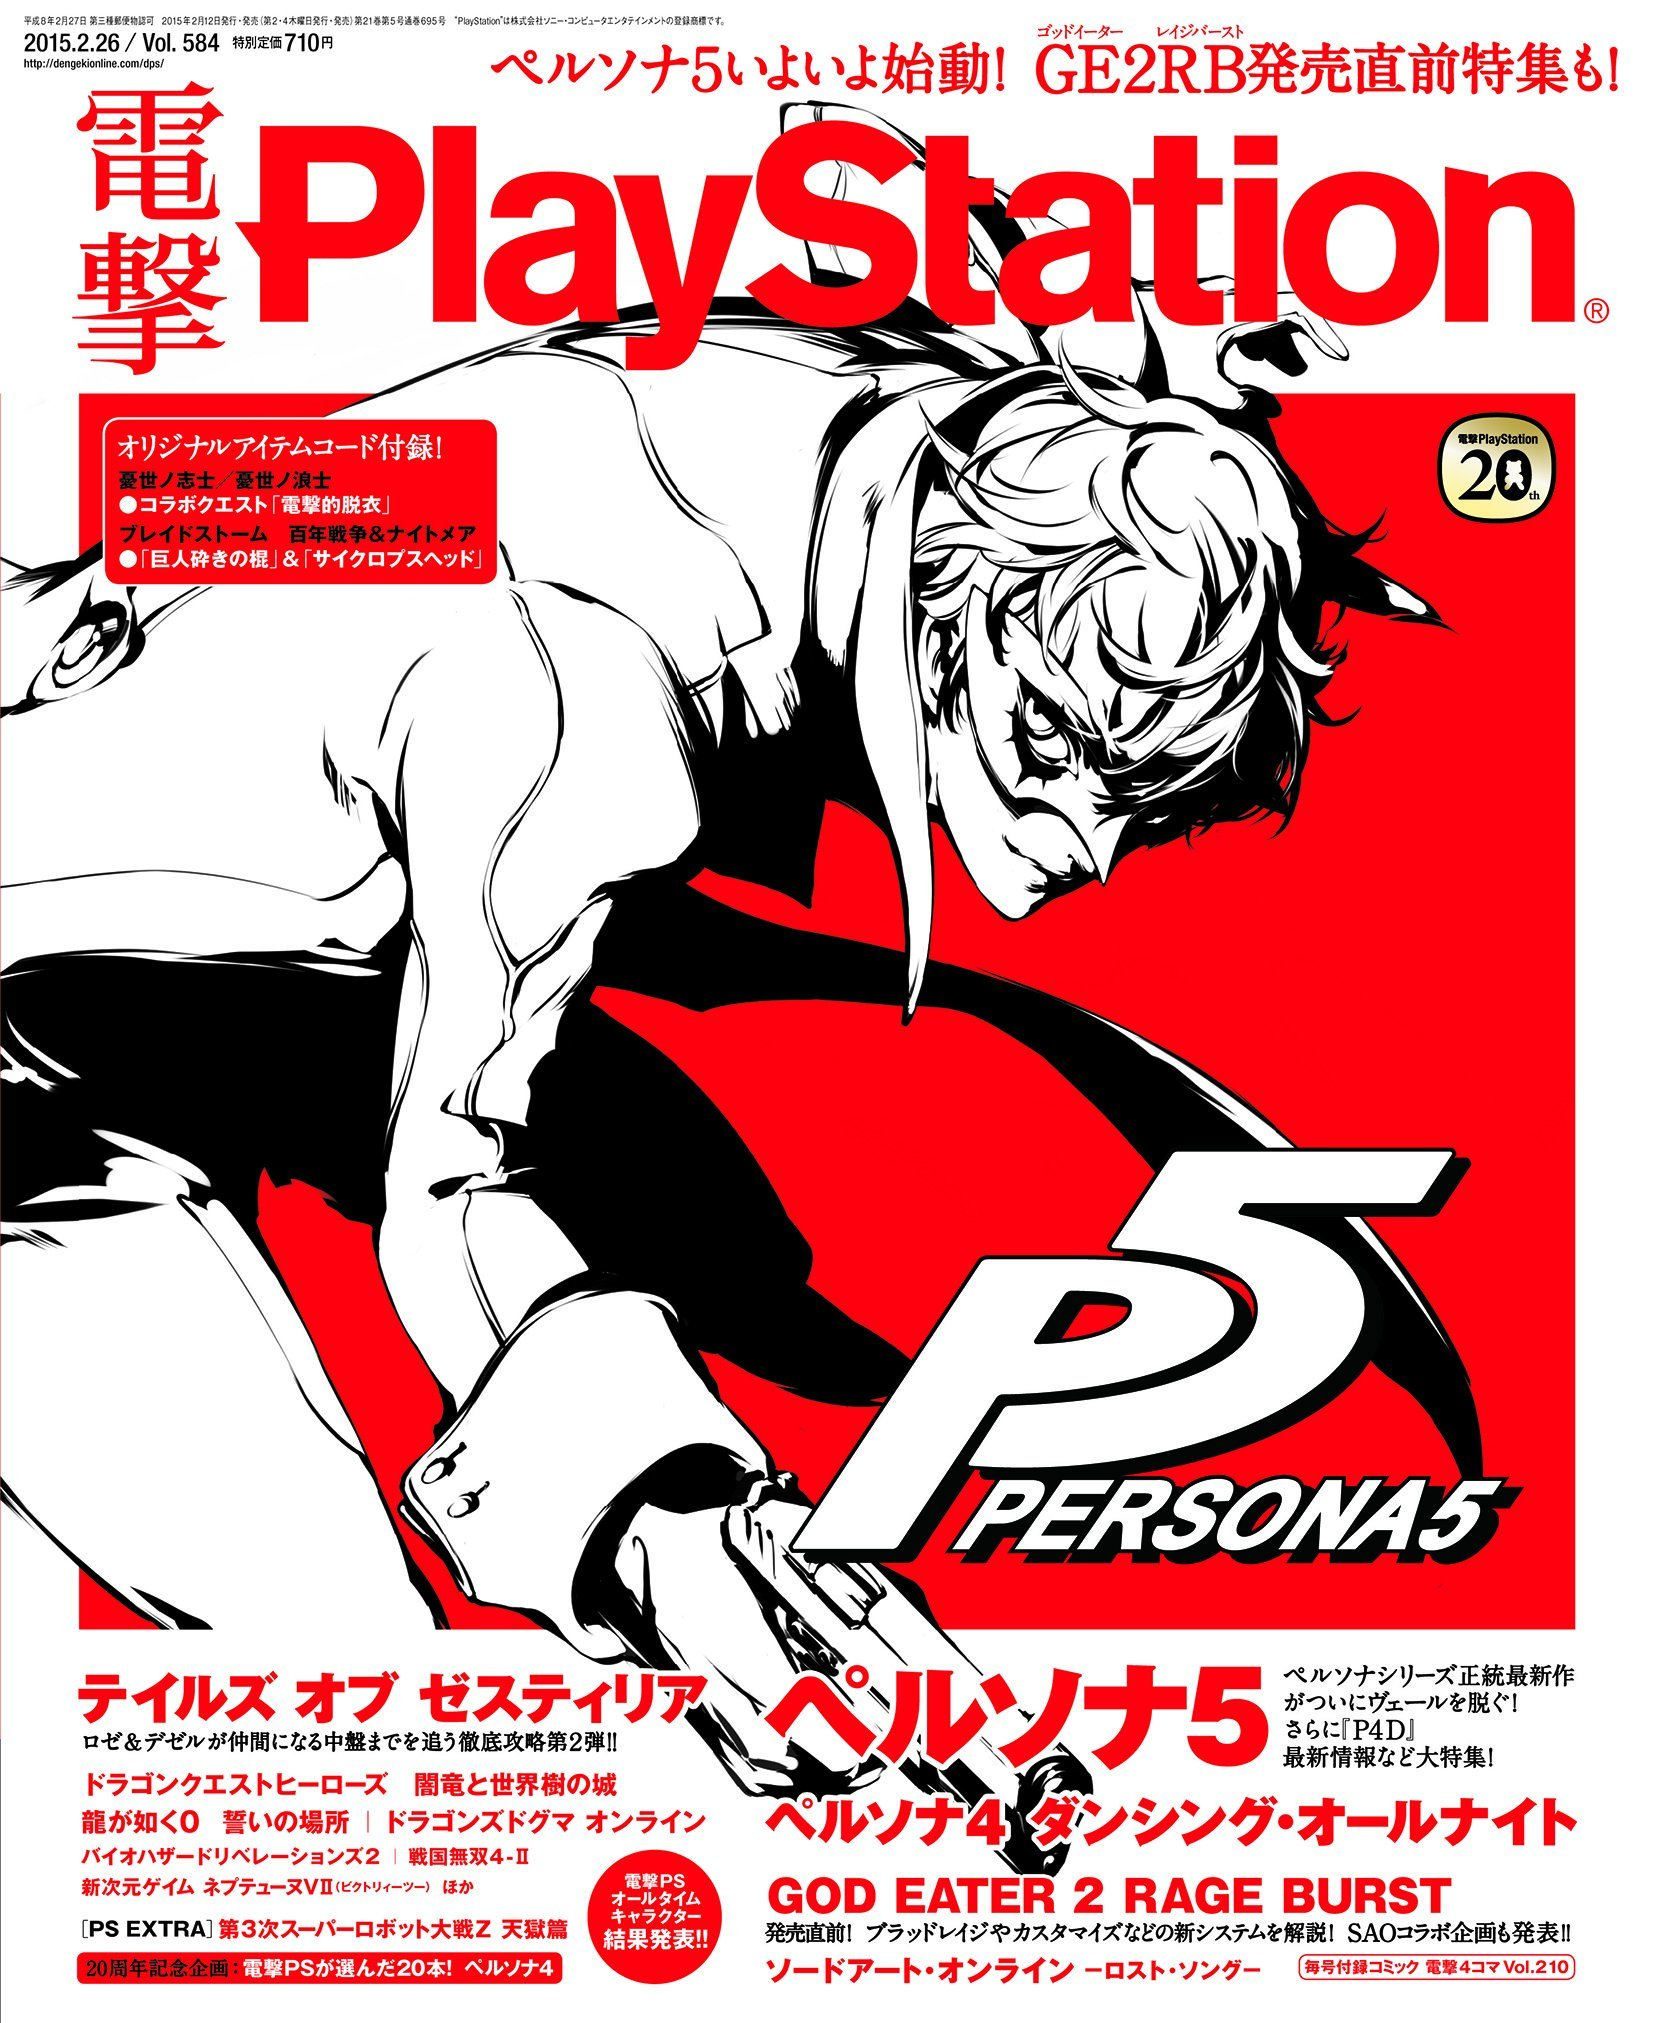 Dengeki PlayStation 584 (February 26, 2015)